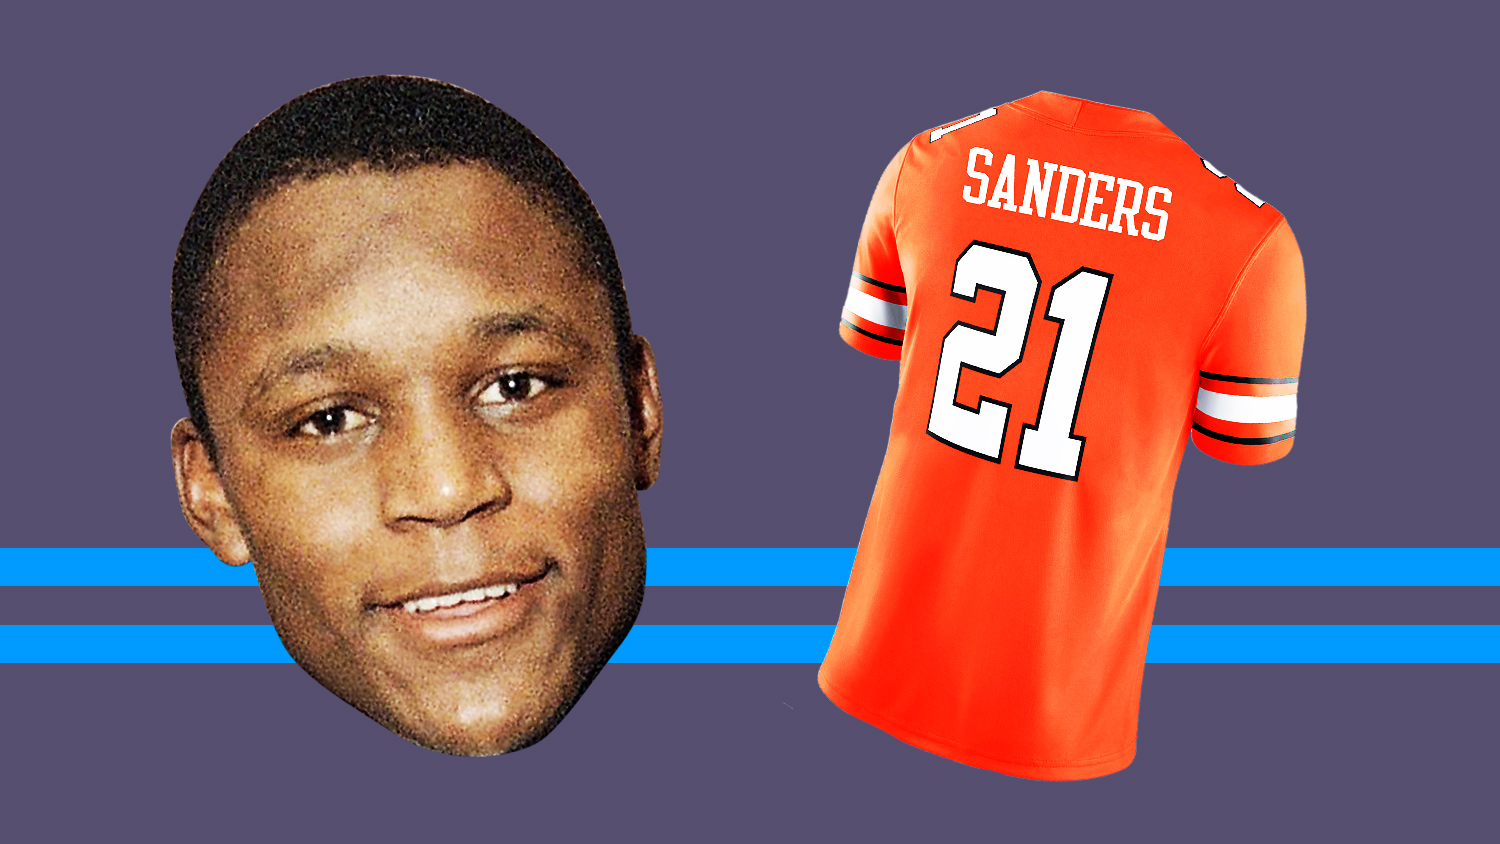 A real treat': Barry Sanders on Oklahoma State's uniforms honoring ...